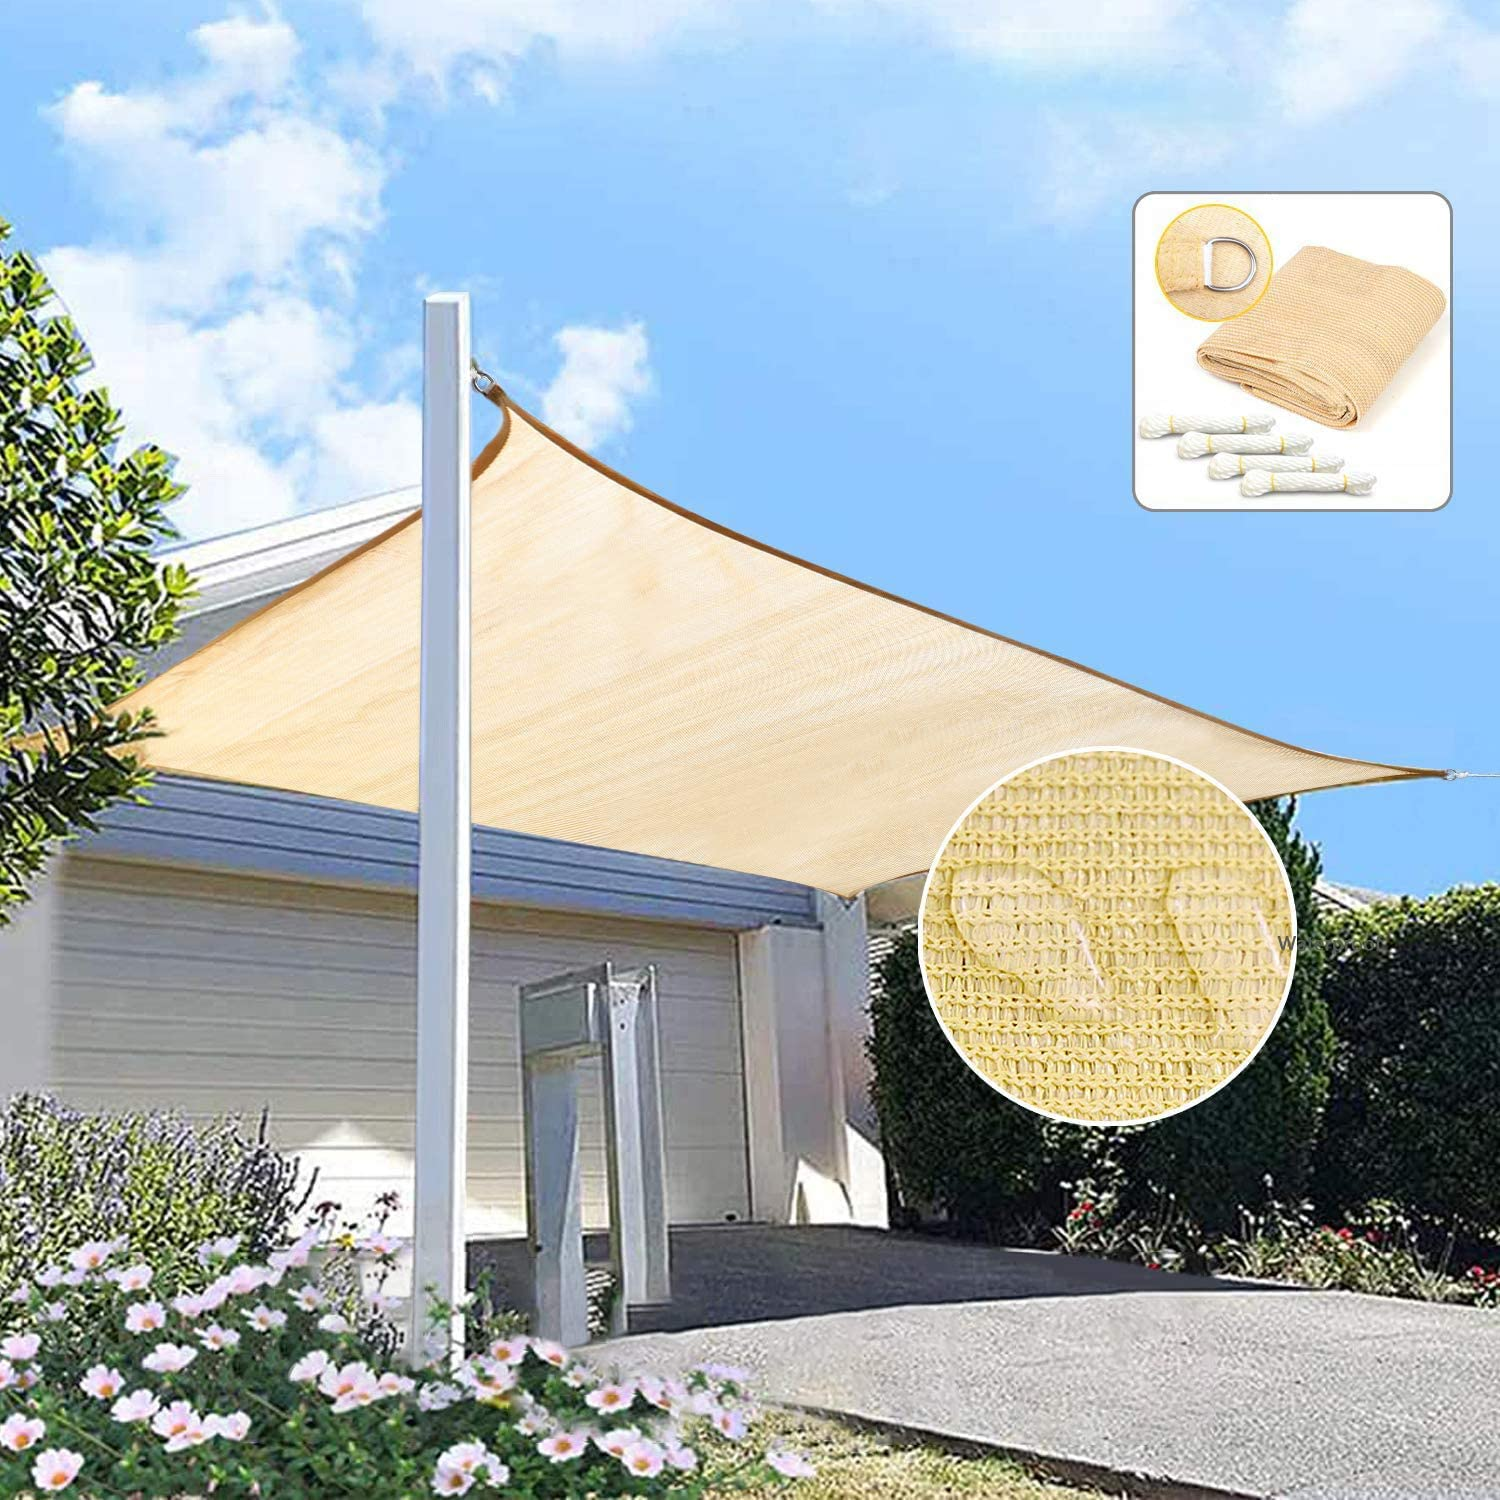 LadyRosian 16' x 16' Beige Sun Shade Sail, Square Windproof UV Block Sun Shade Canopy for Outdoor Patio, Garden, Backyard, Playground Outdoor Facility - Includes Rope